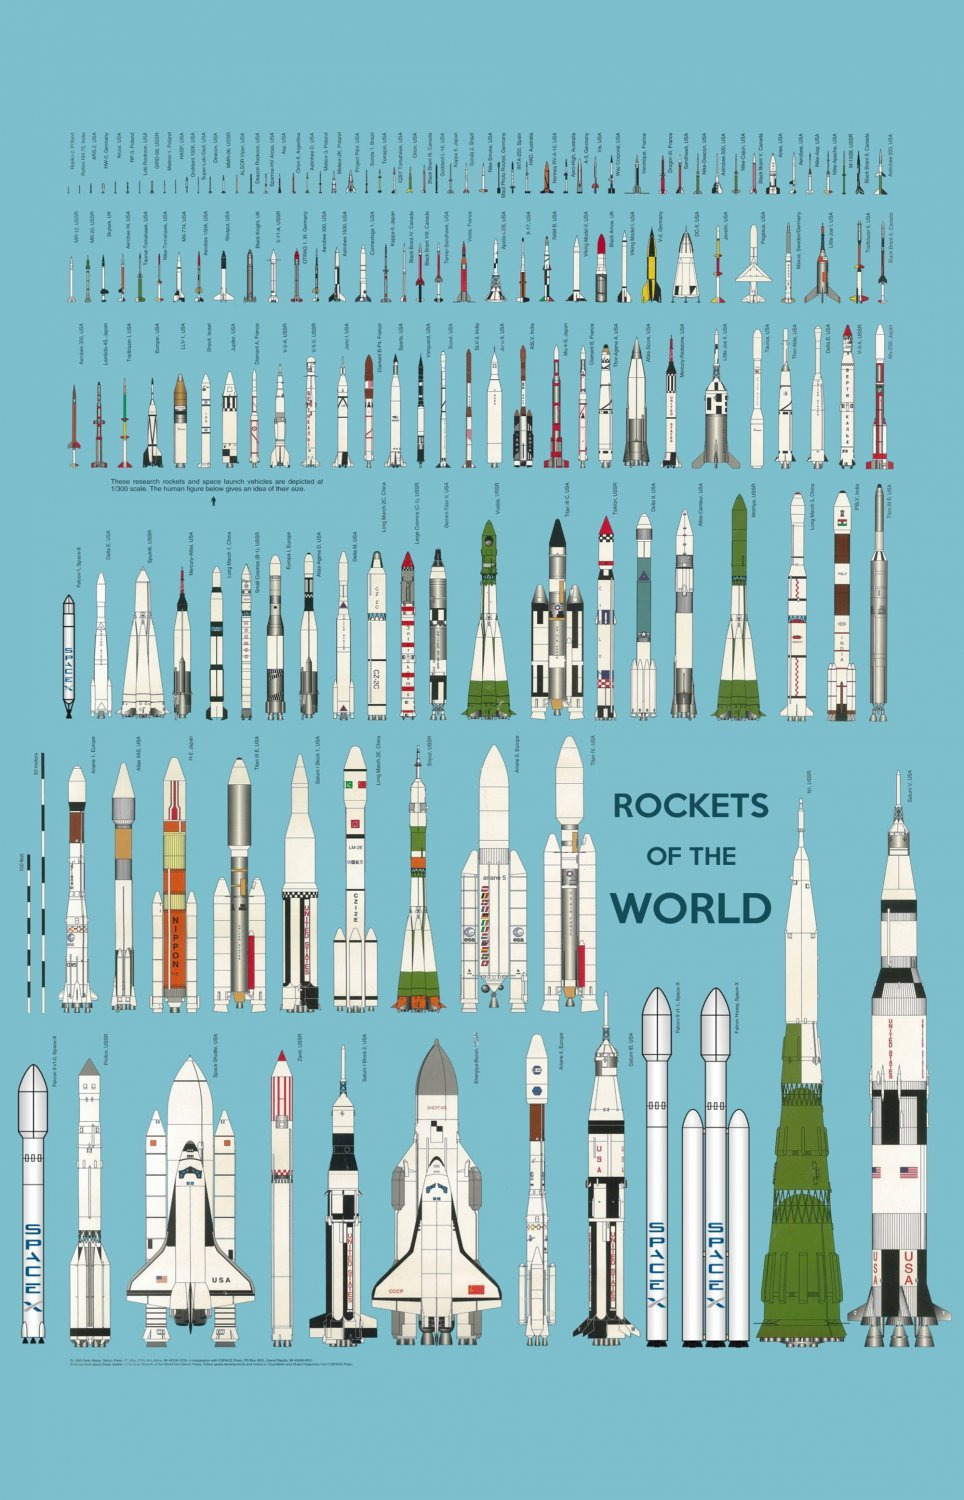 Rockets of the World Chart  18x28 inches Poster Print